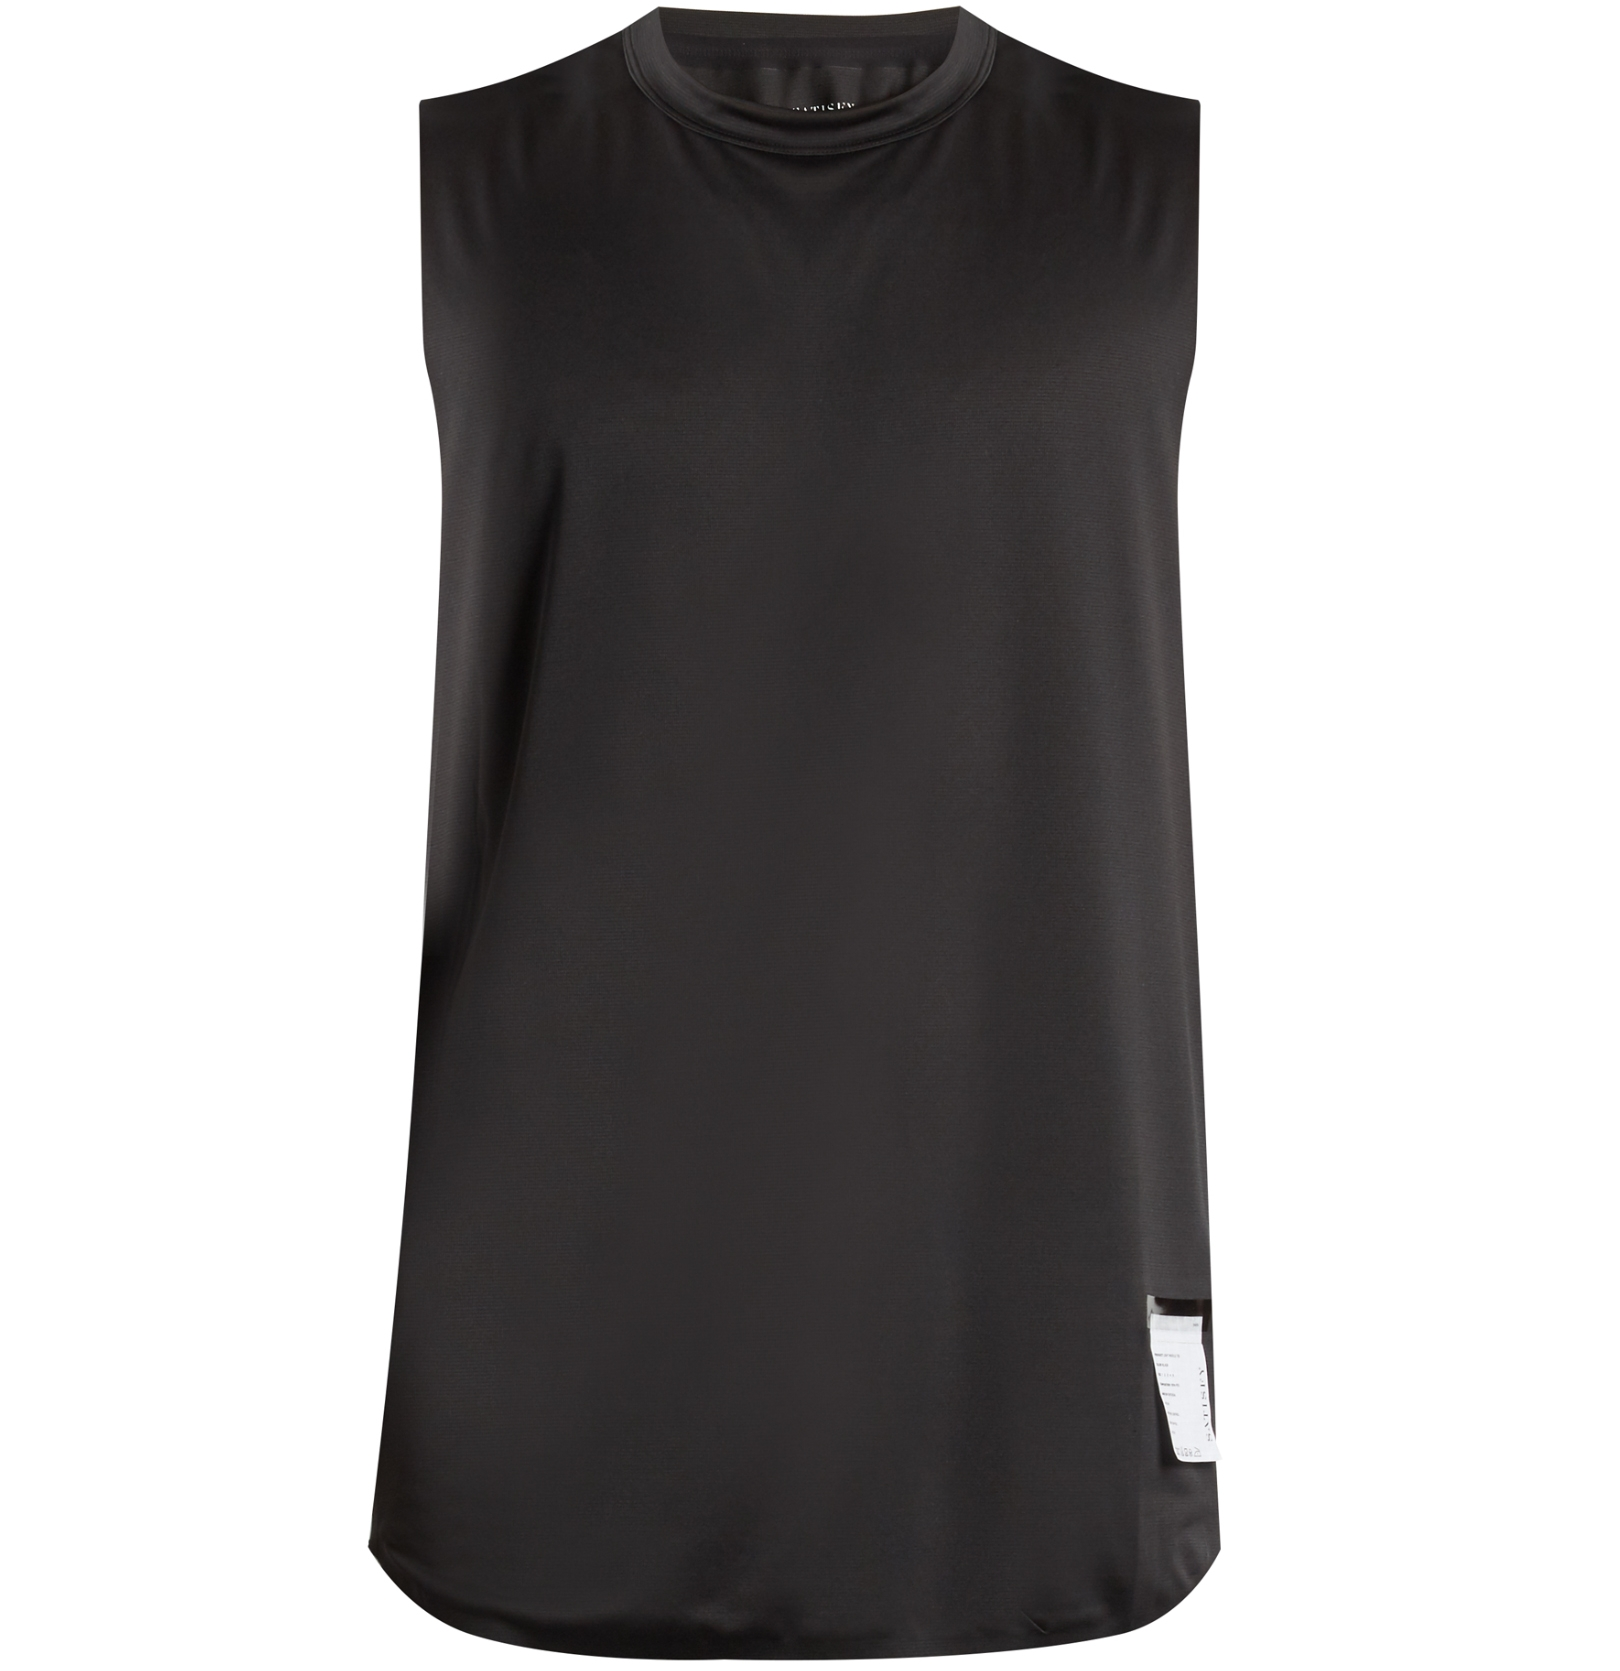 SATISFY Light Muscle stretch singlet tank top -  £70.00